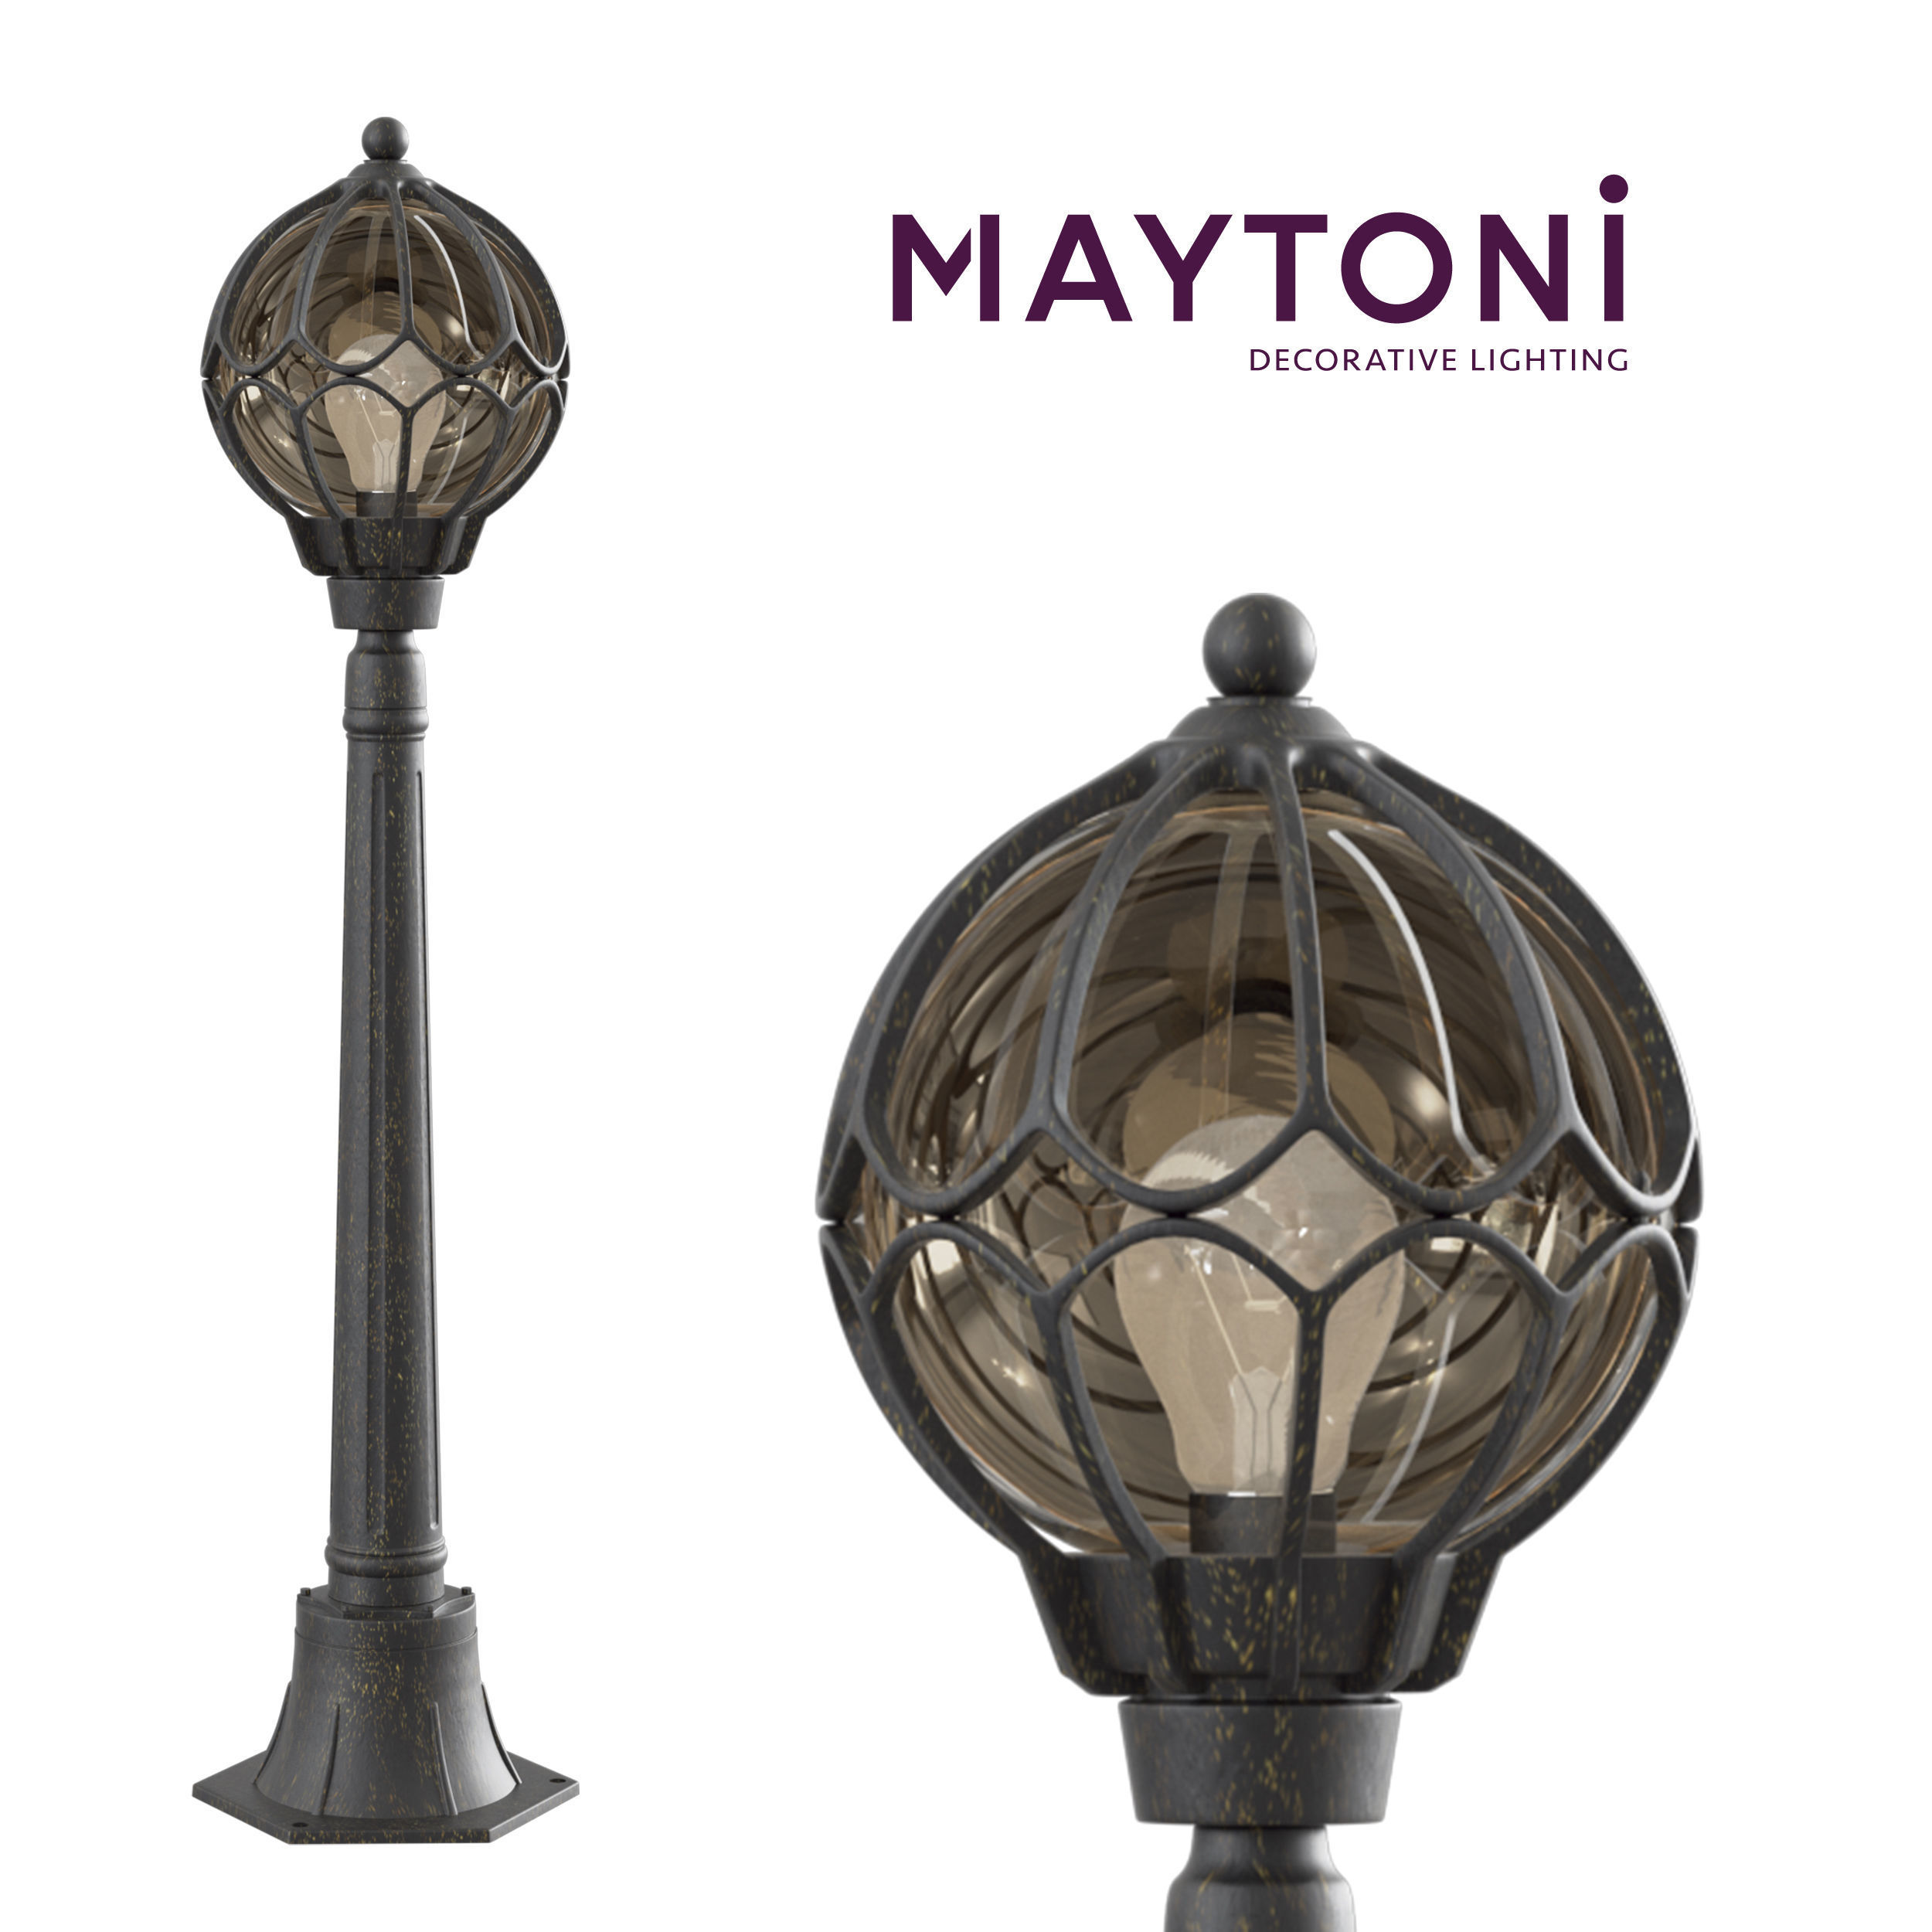 Garden Lamp 3d Model: Wall Lamp Champs Elysees S110-10-01-R Maytoni Outdoor 3D